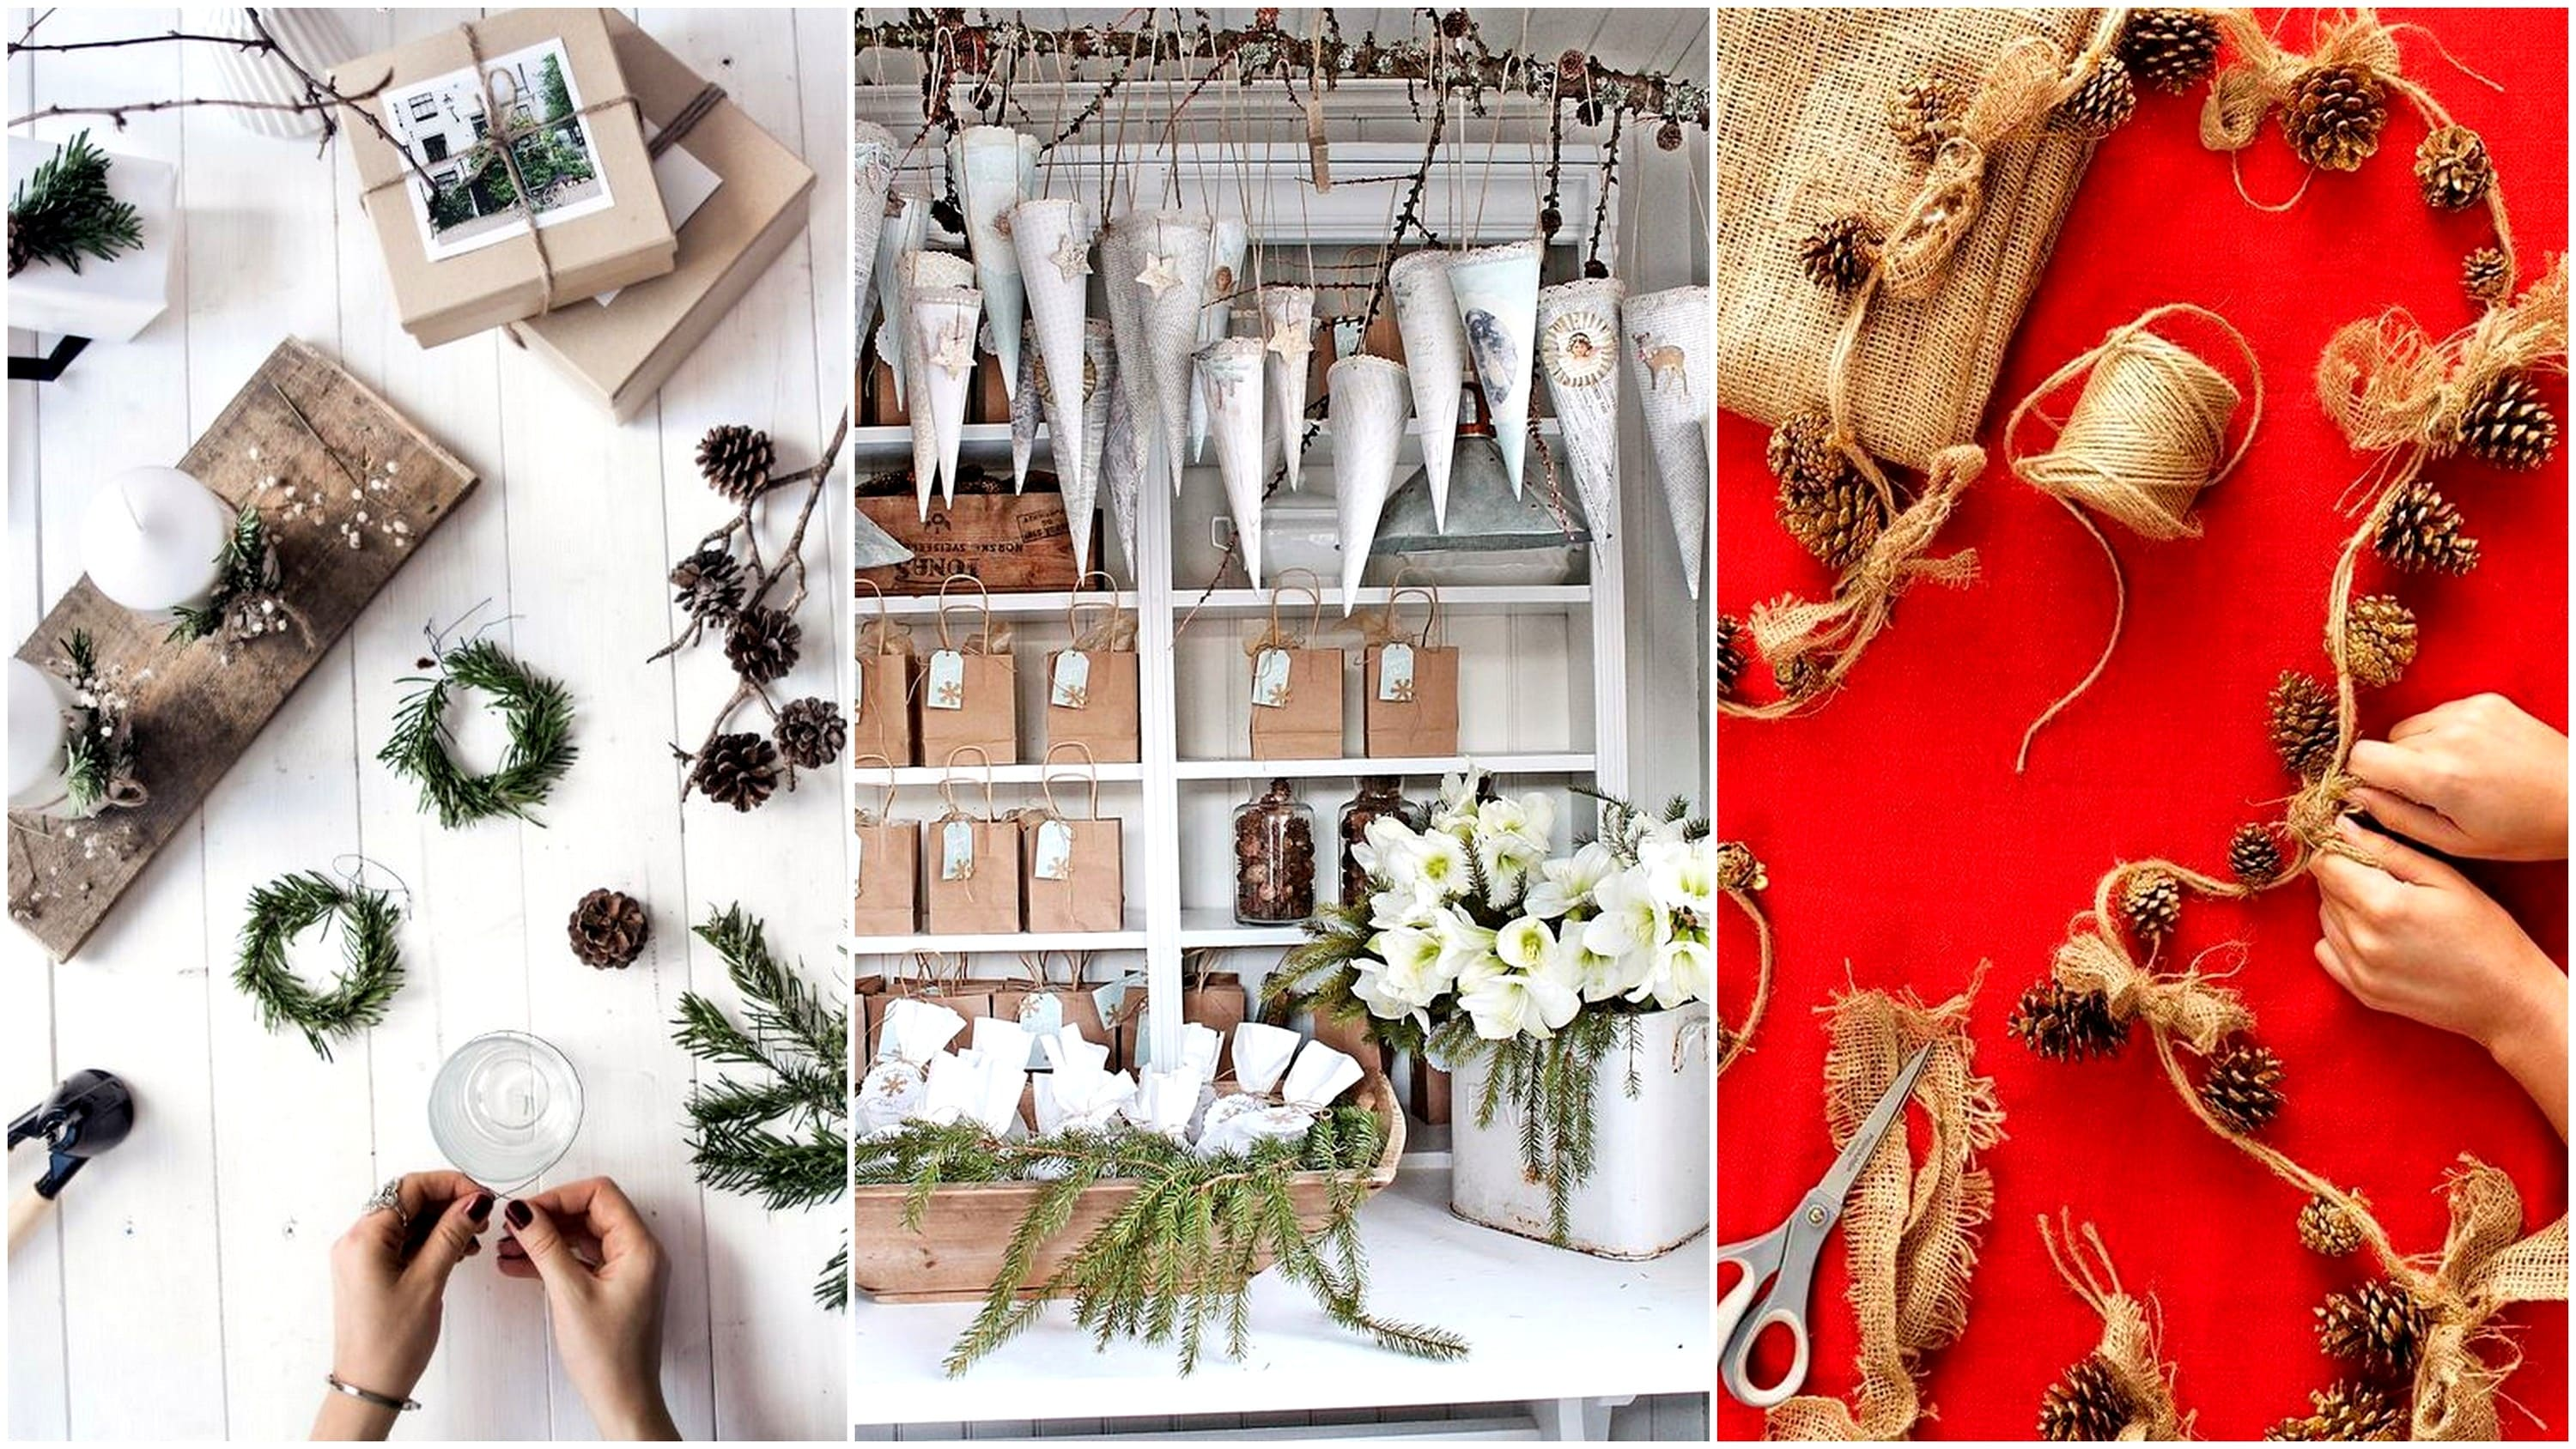 29 Splendid Ideas on How to Decorate for Christmas a Budget